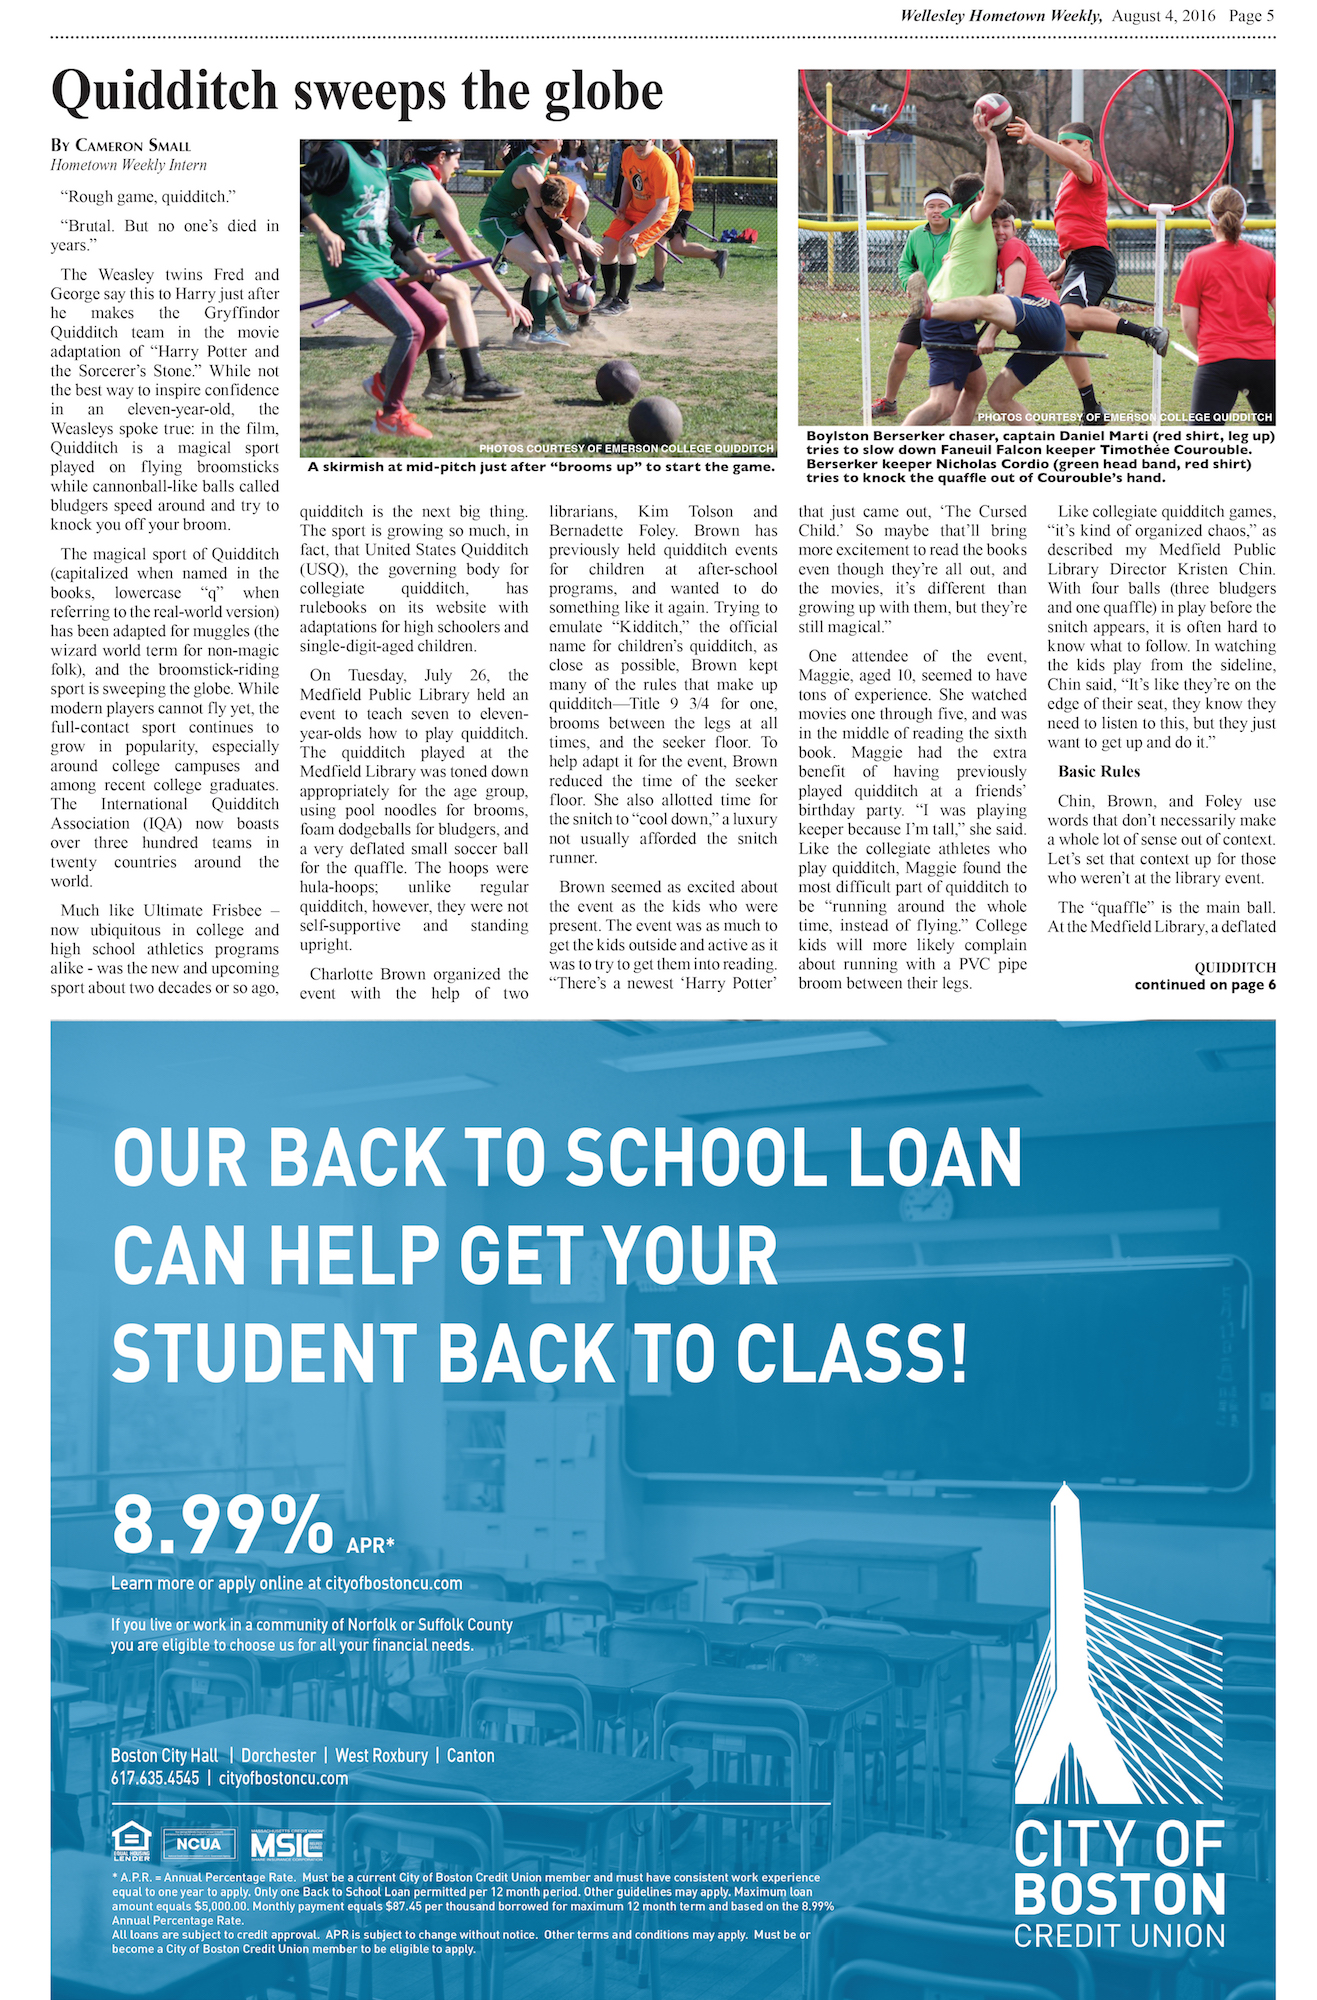 Hometown Weekly Newspaper layout design by Geena Matuson @geenamatuson #thegirlmirage @ https://thegirlmirage.com.